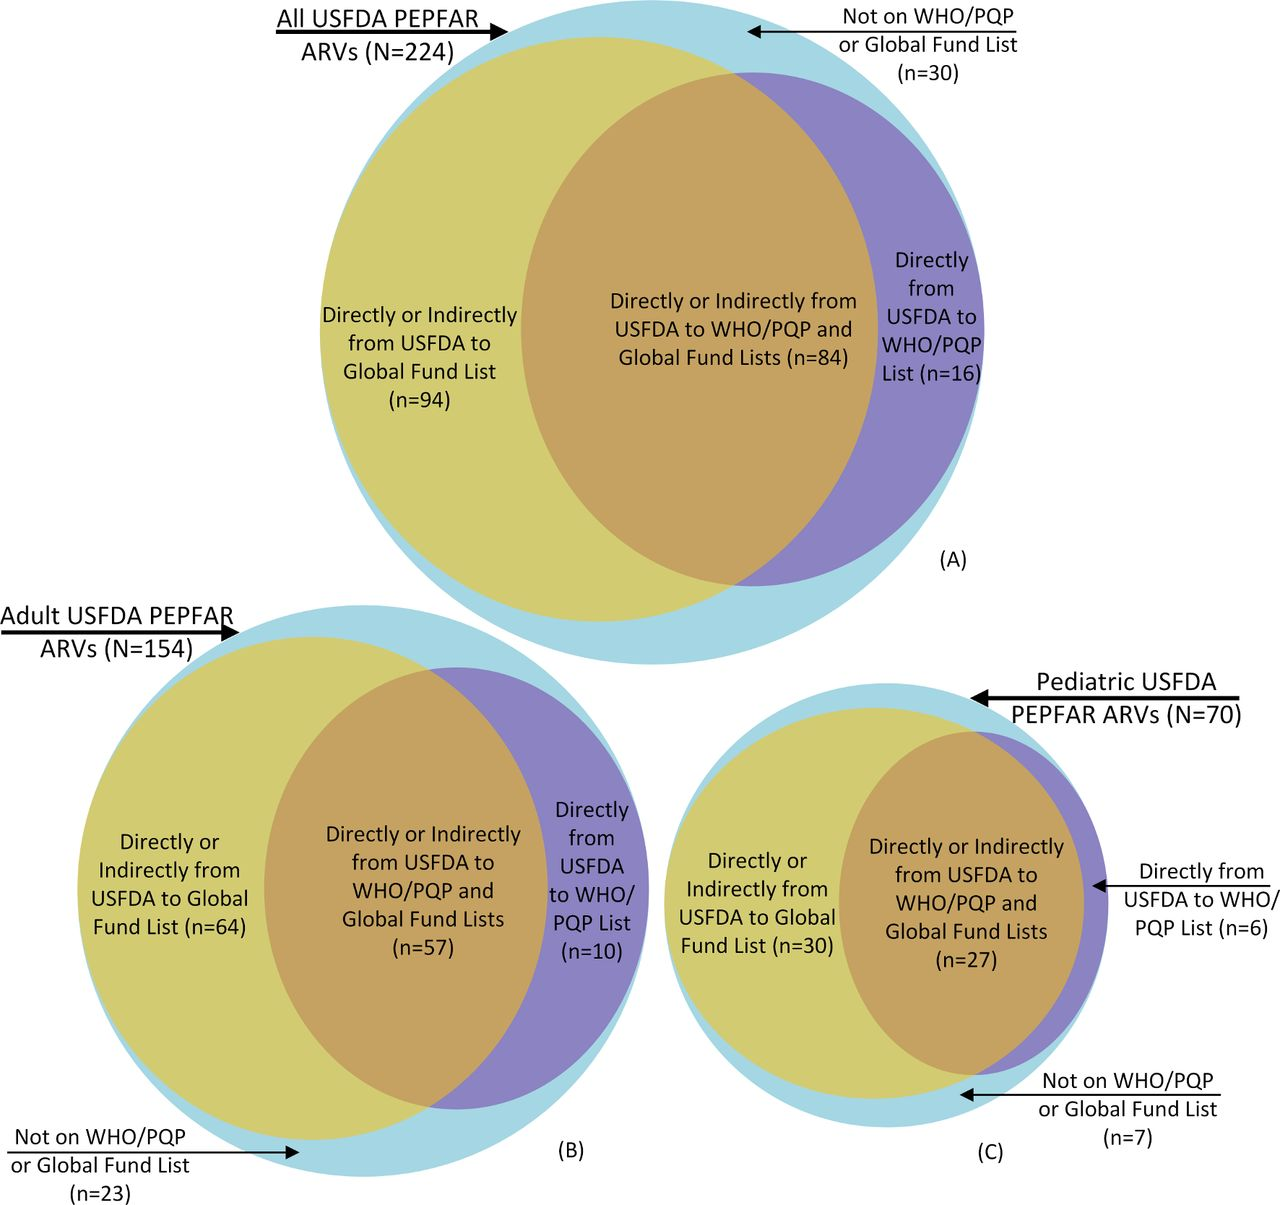 Impact of the US Food and Drug Administration registration of